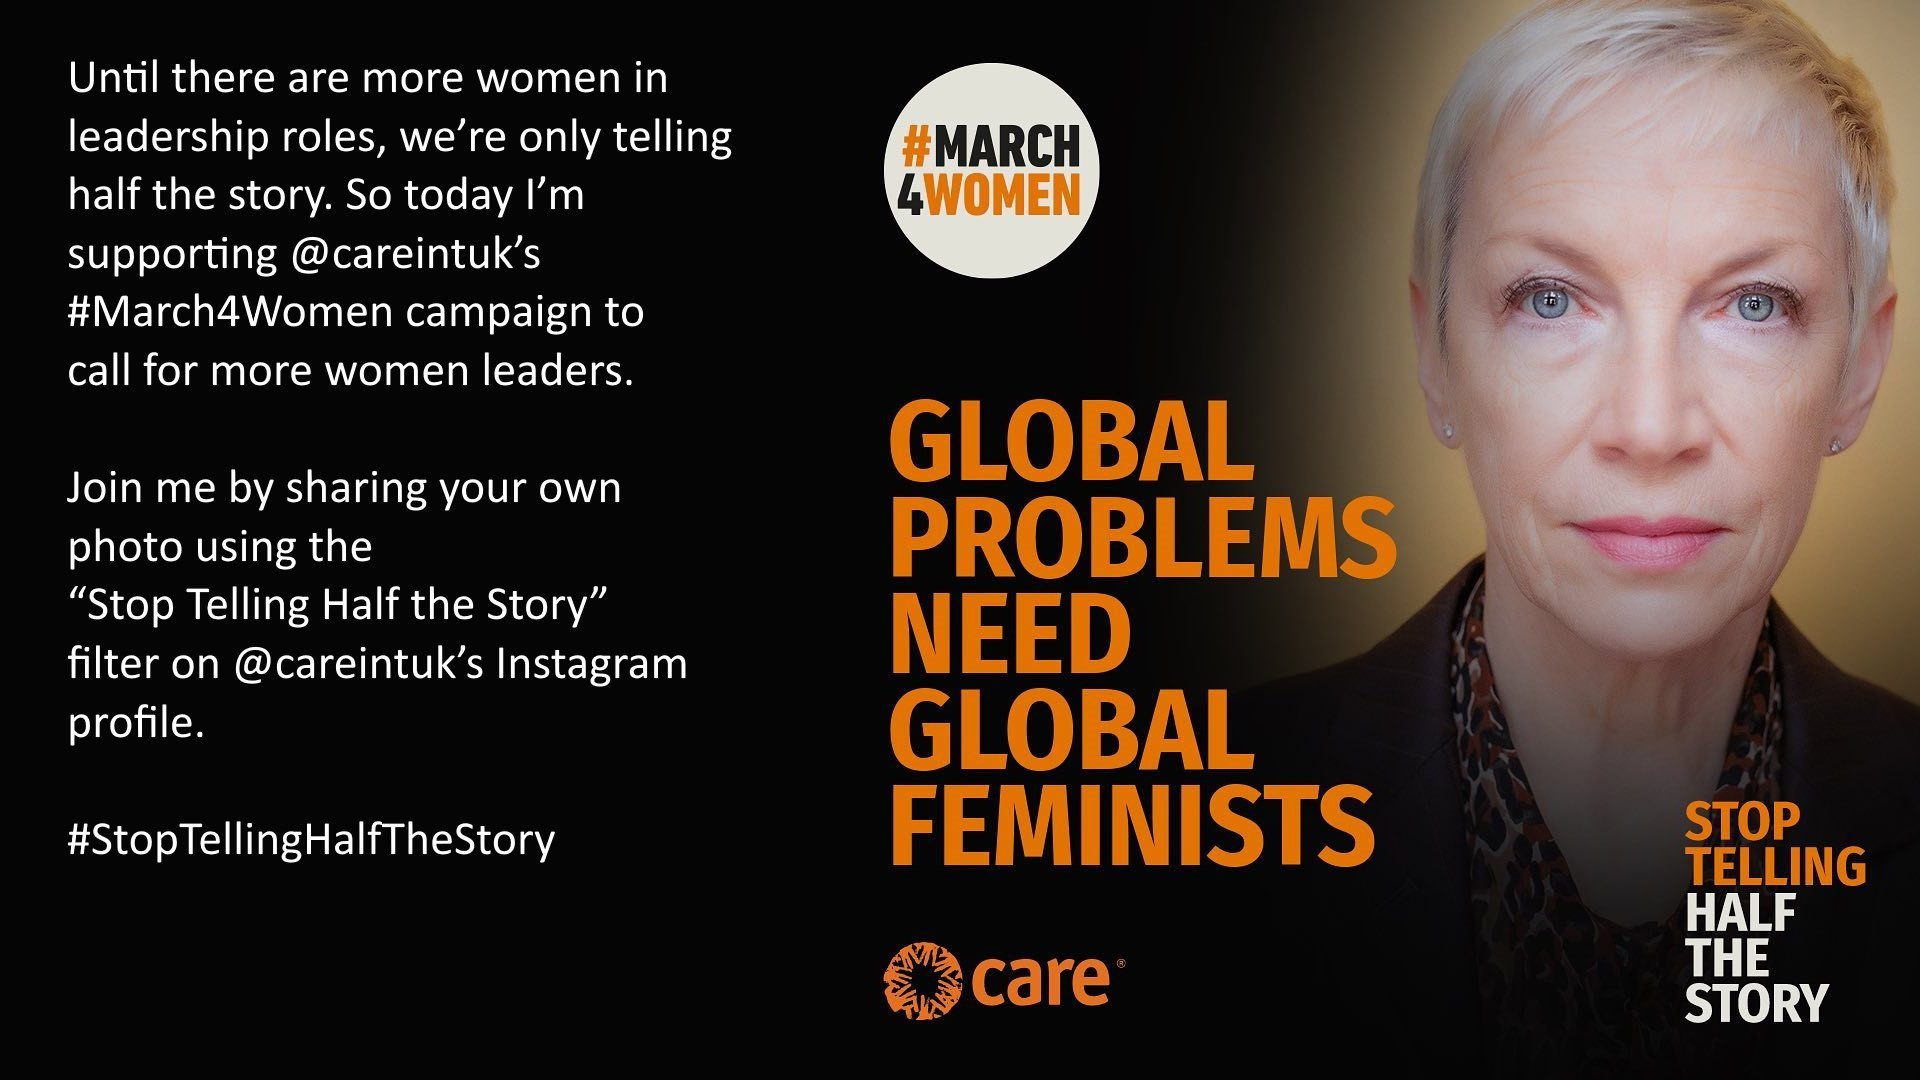 Annie-Lennox-Global-Problems-Need-Global-Feminists-march4women